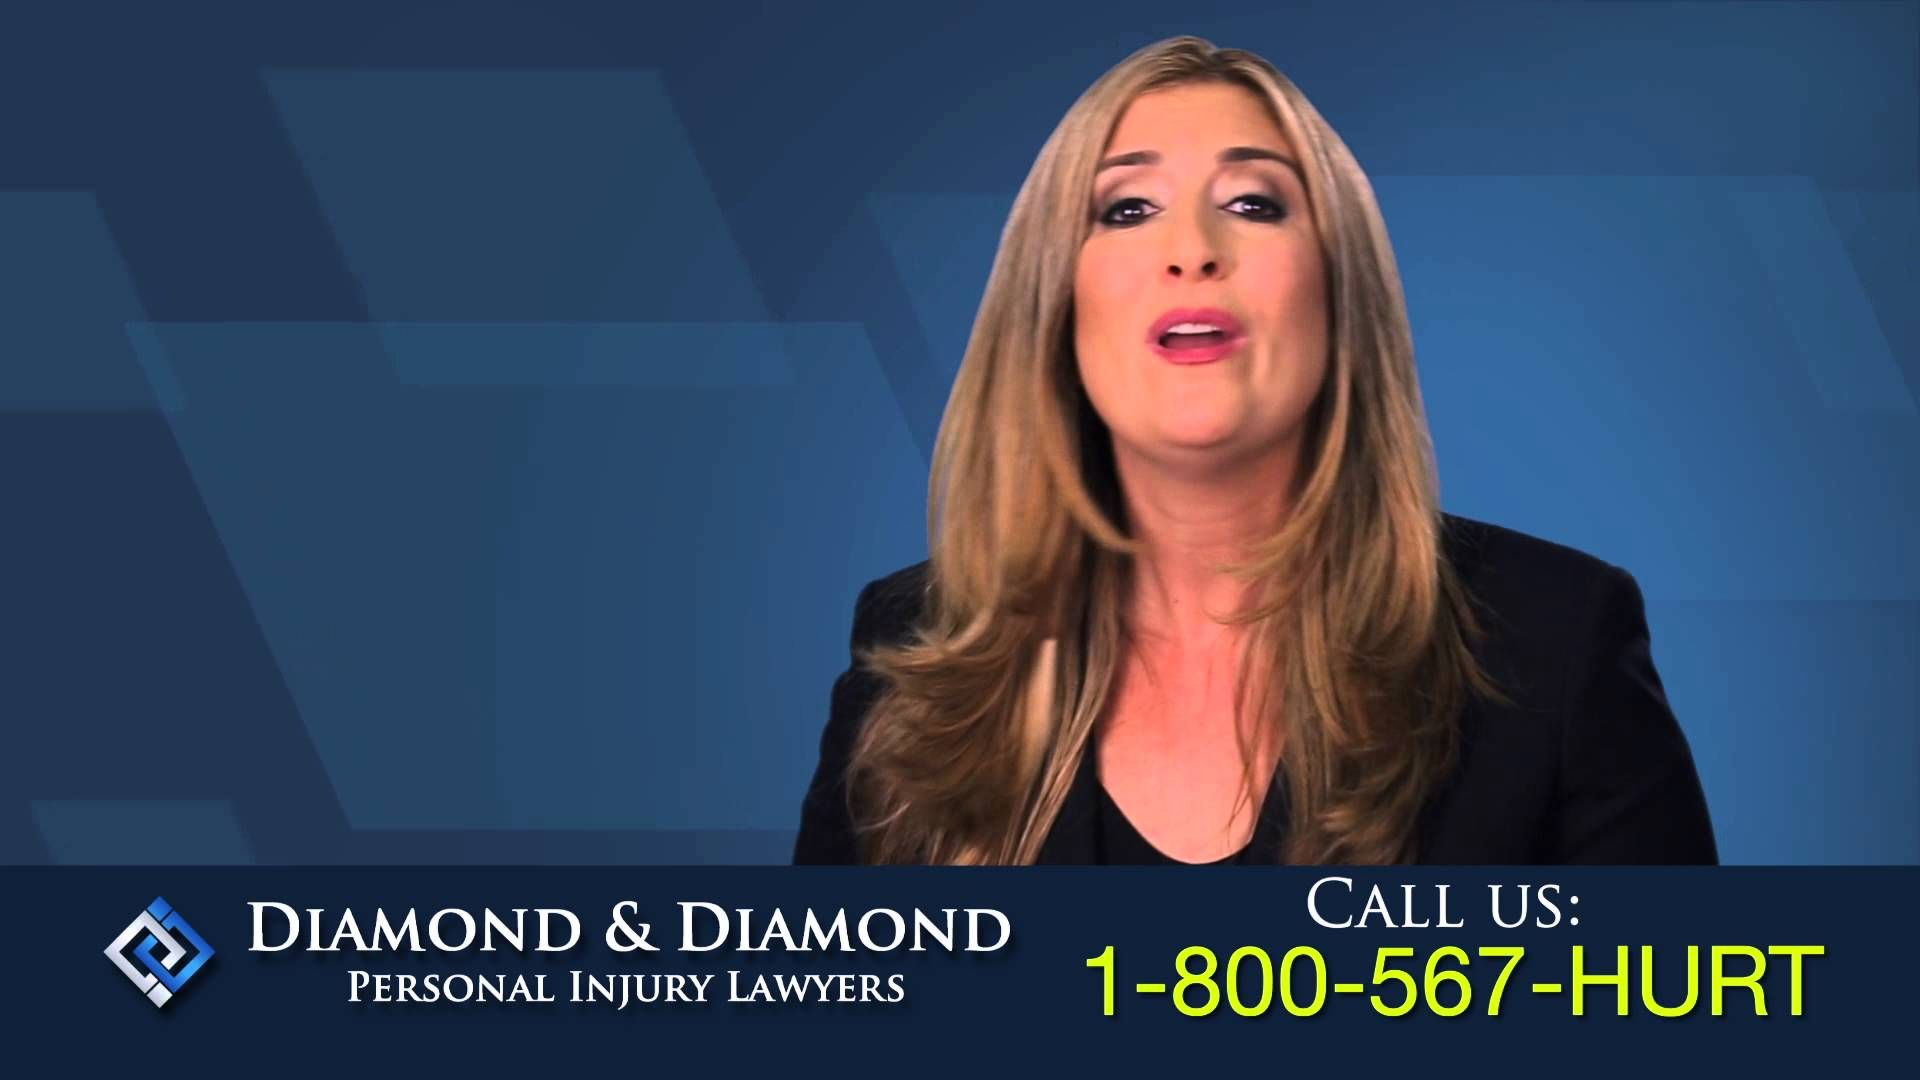 accident and health insurance companies